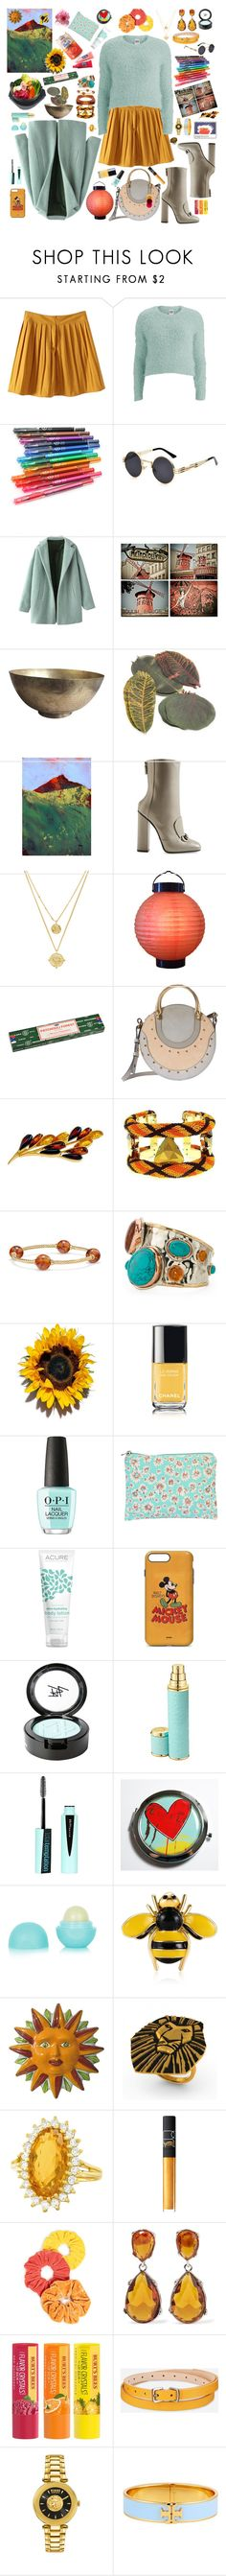 """Craving Sunny Days and Sunflowers"" by kayce35 ❤ liked on Polyvore featuring Vero Moda, HI-TEC, WALL, Sur La Table, Gucci, Luv Aj, Mambo, Chloé, Be-Jewelled and Forest of Chintz"